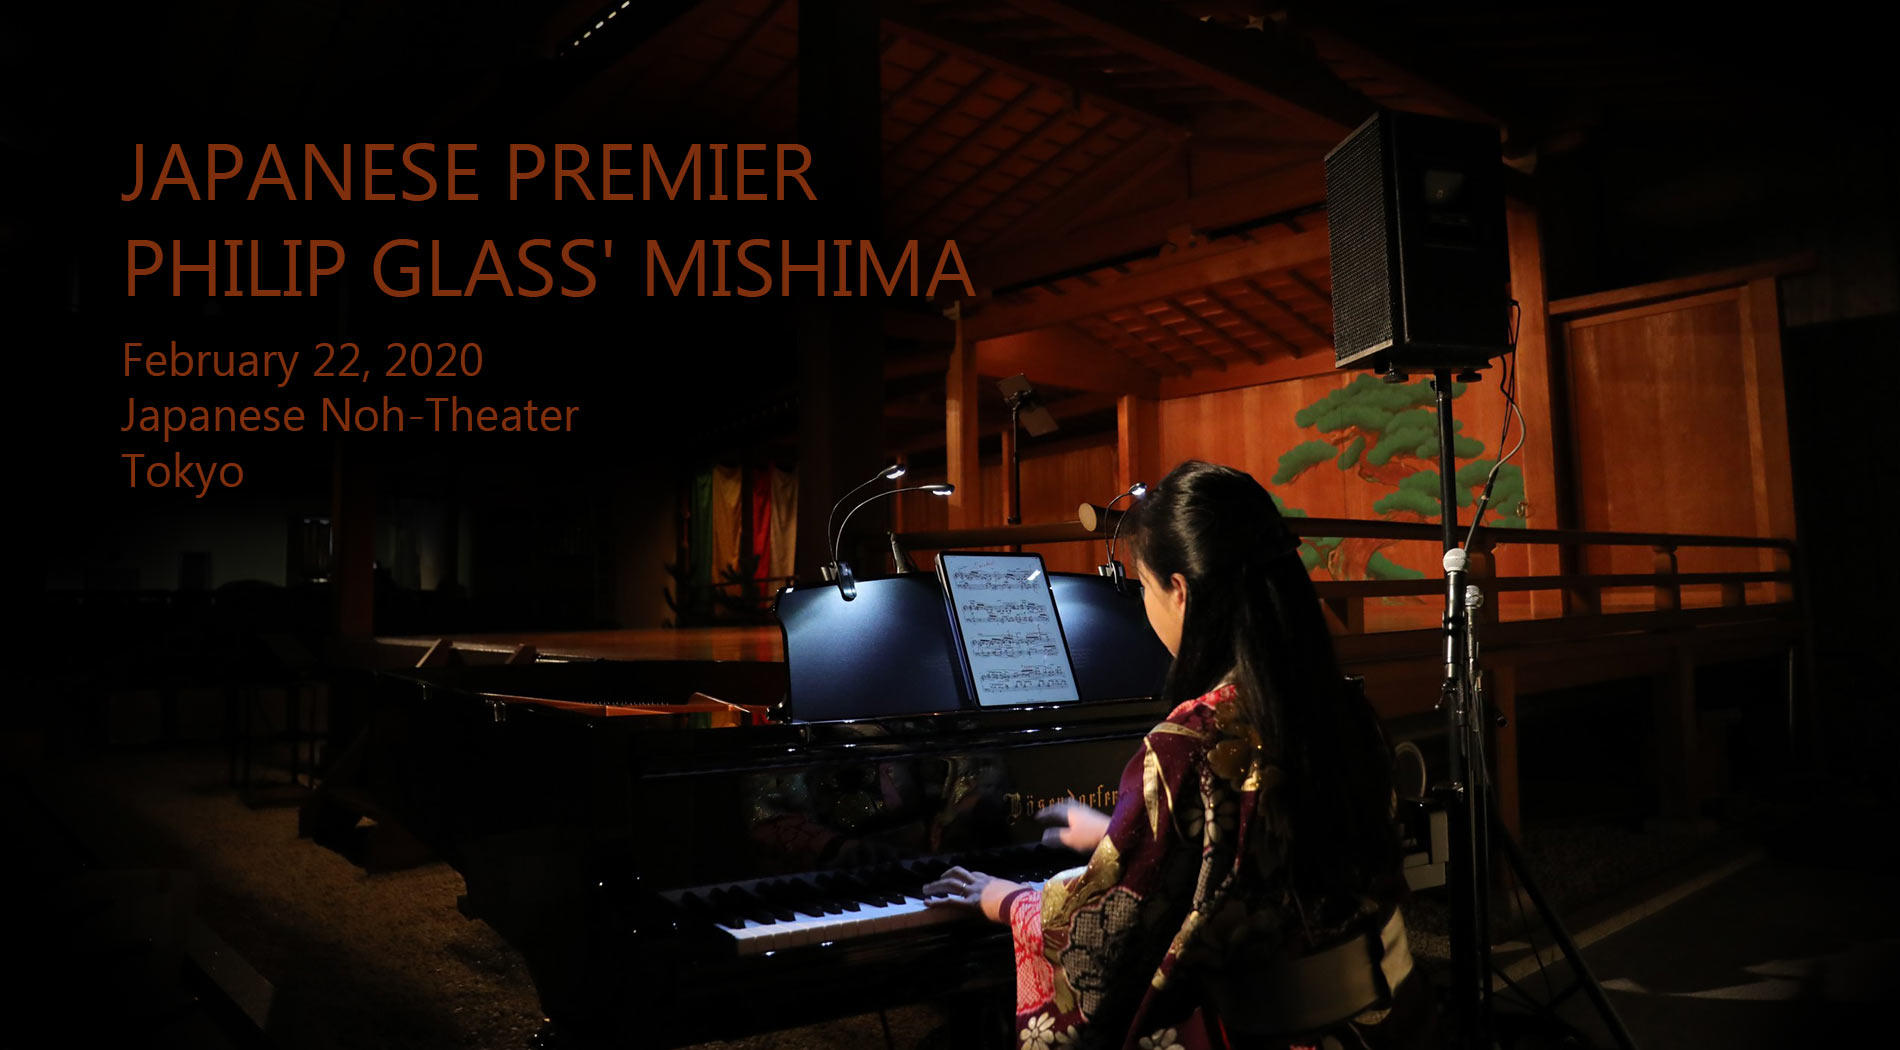 Japanese Premier Philip Glass' MISHIMA at the Japanese Noh-Theater